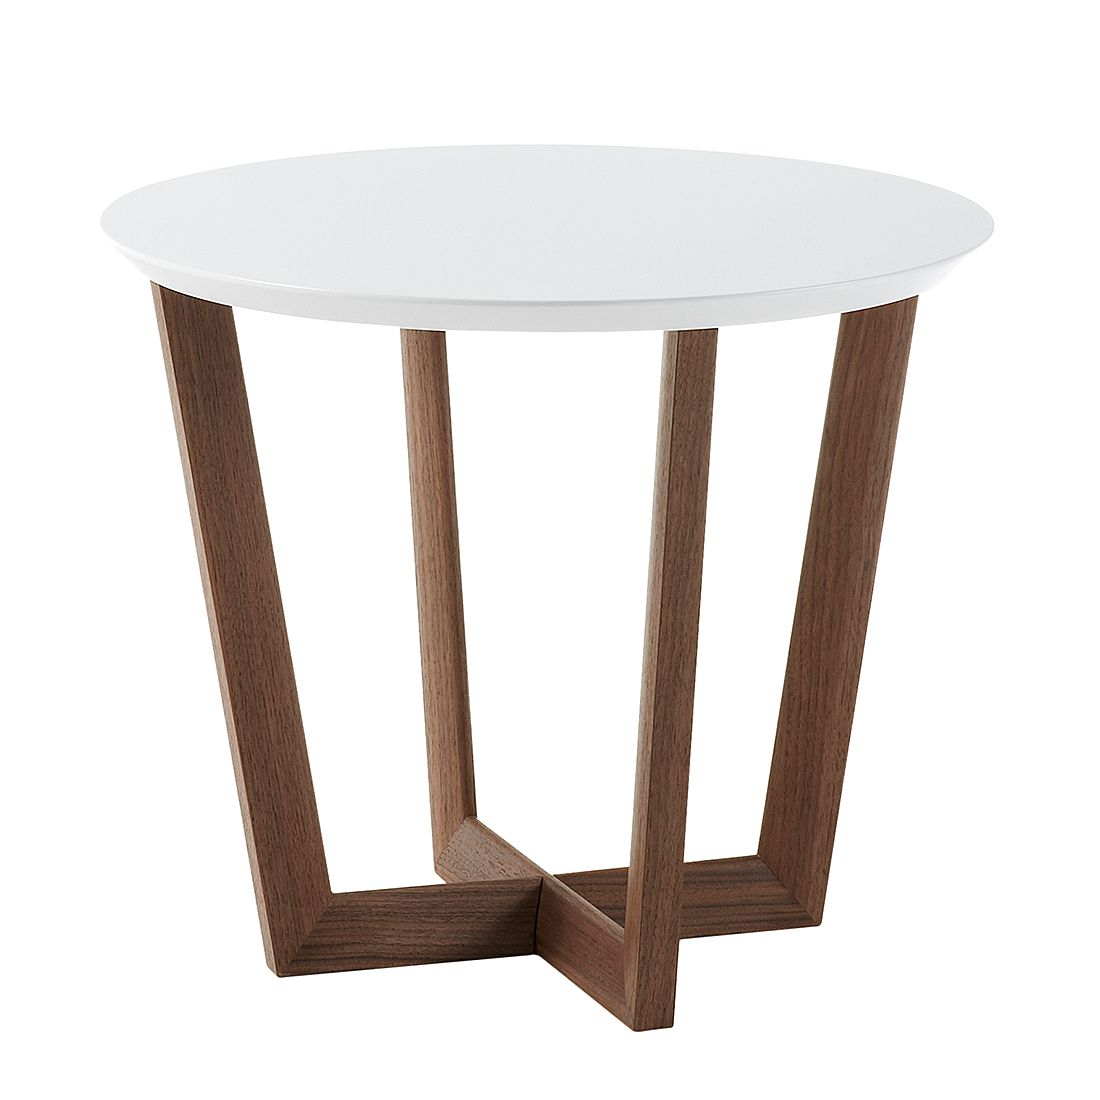 Table d'appoint Limmared - Blanc mat / Noyer, Morteens